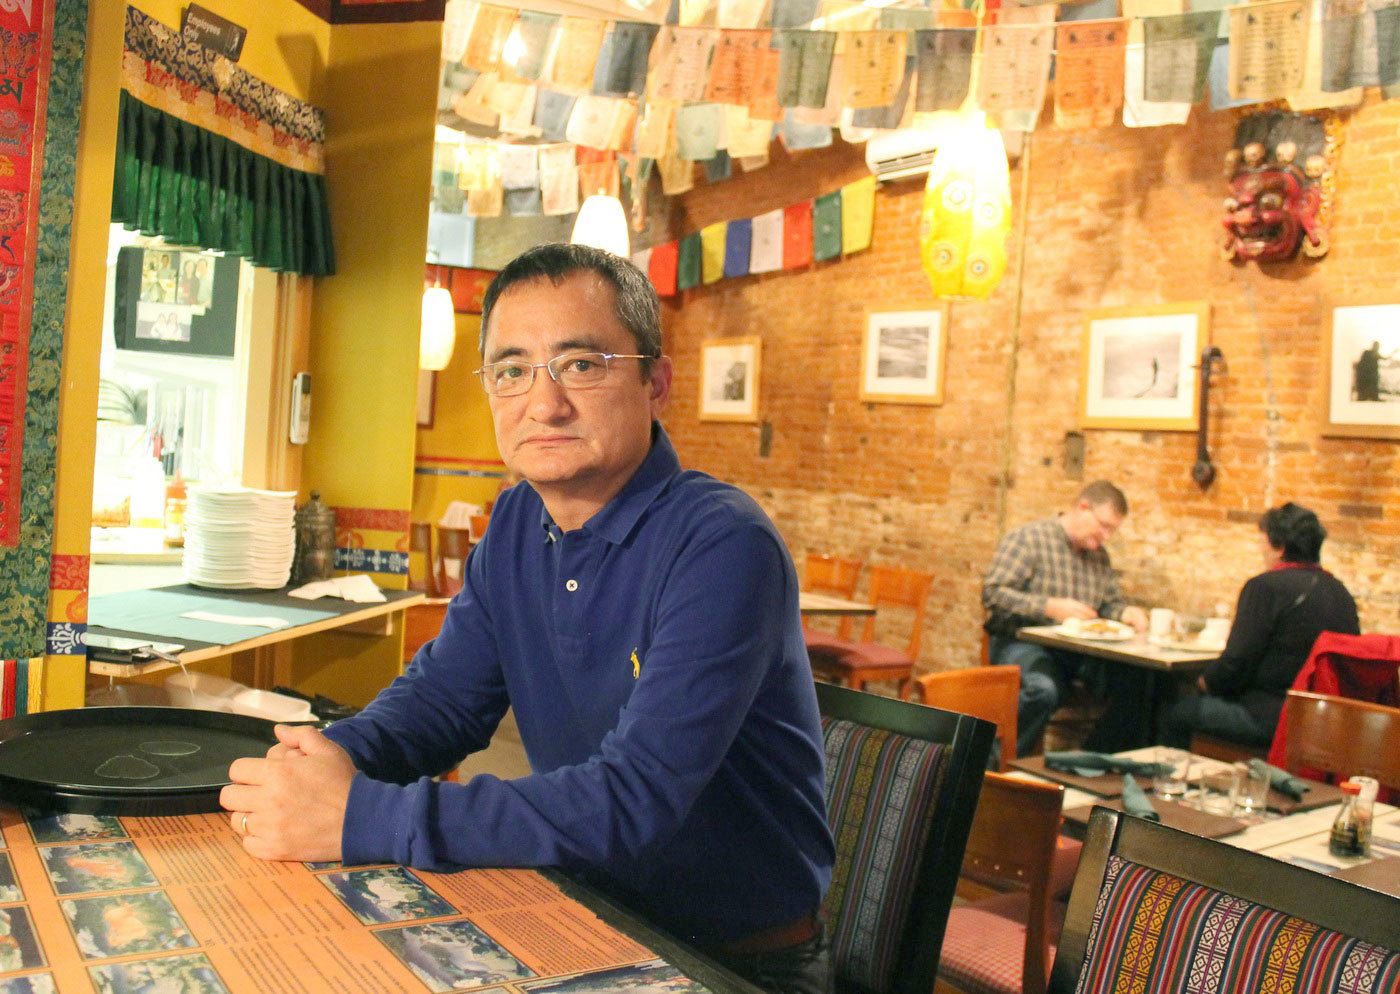 Tenzin Dorjee in his restaurant